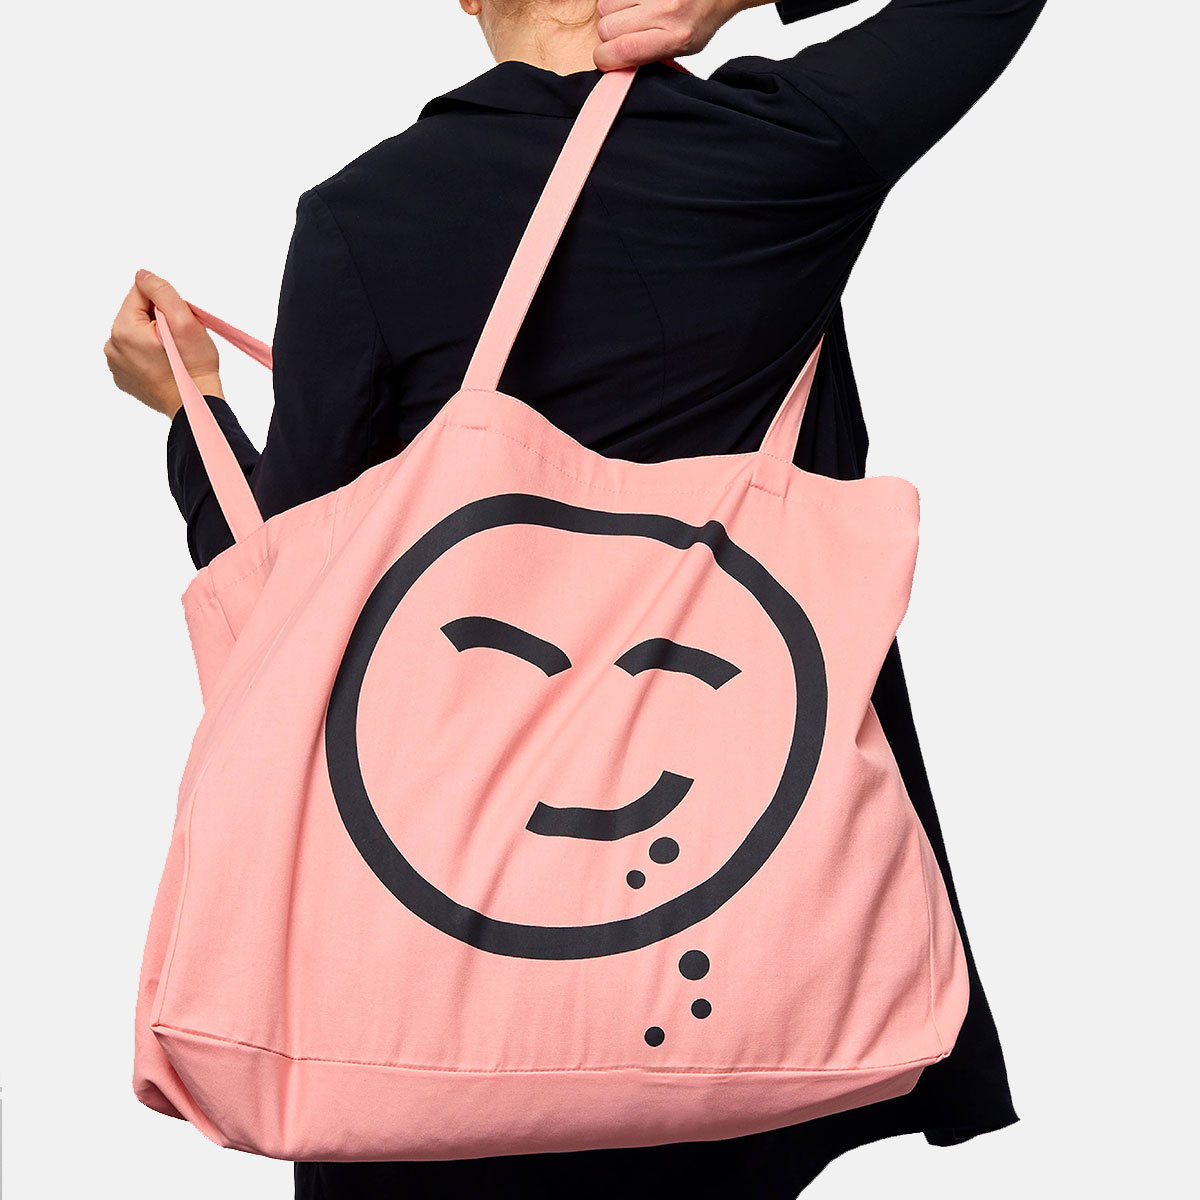 Custom made tote bags for Anton&Anton by Framme